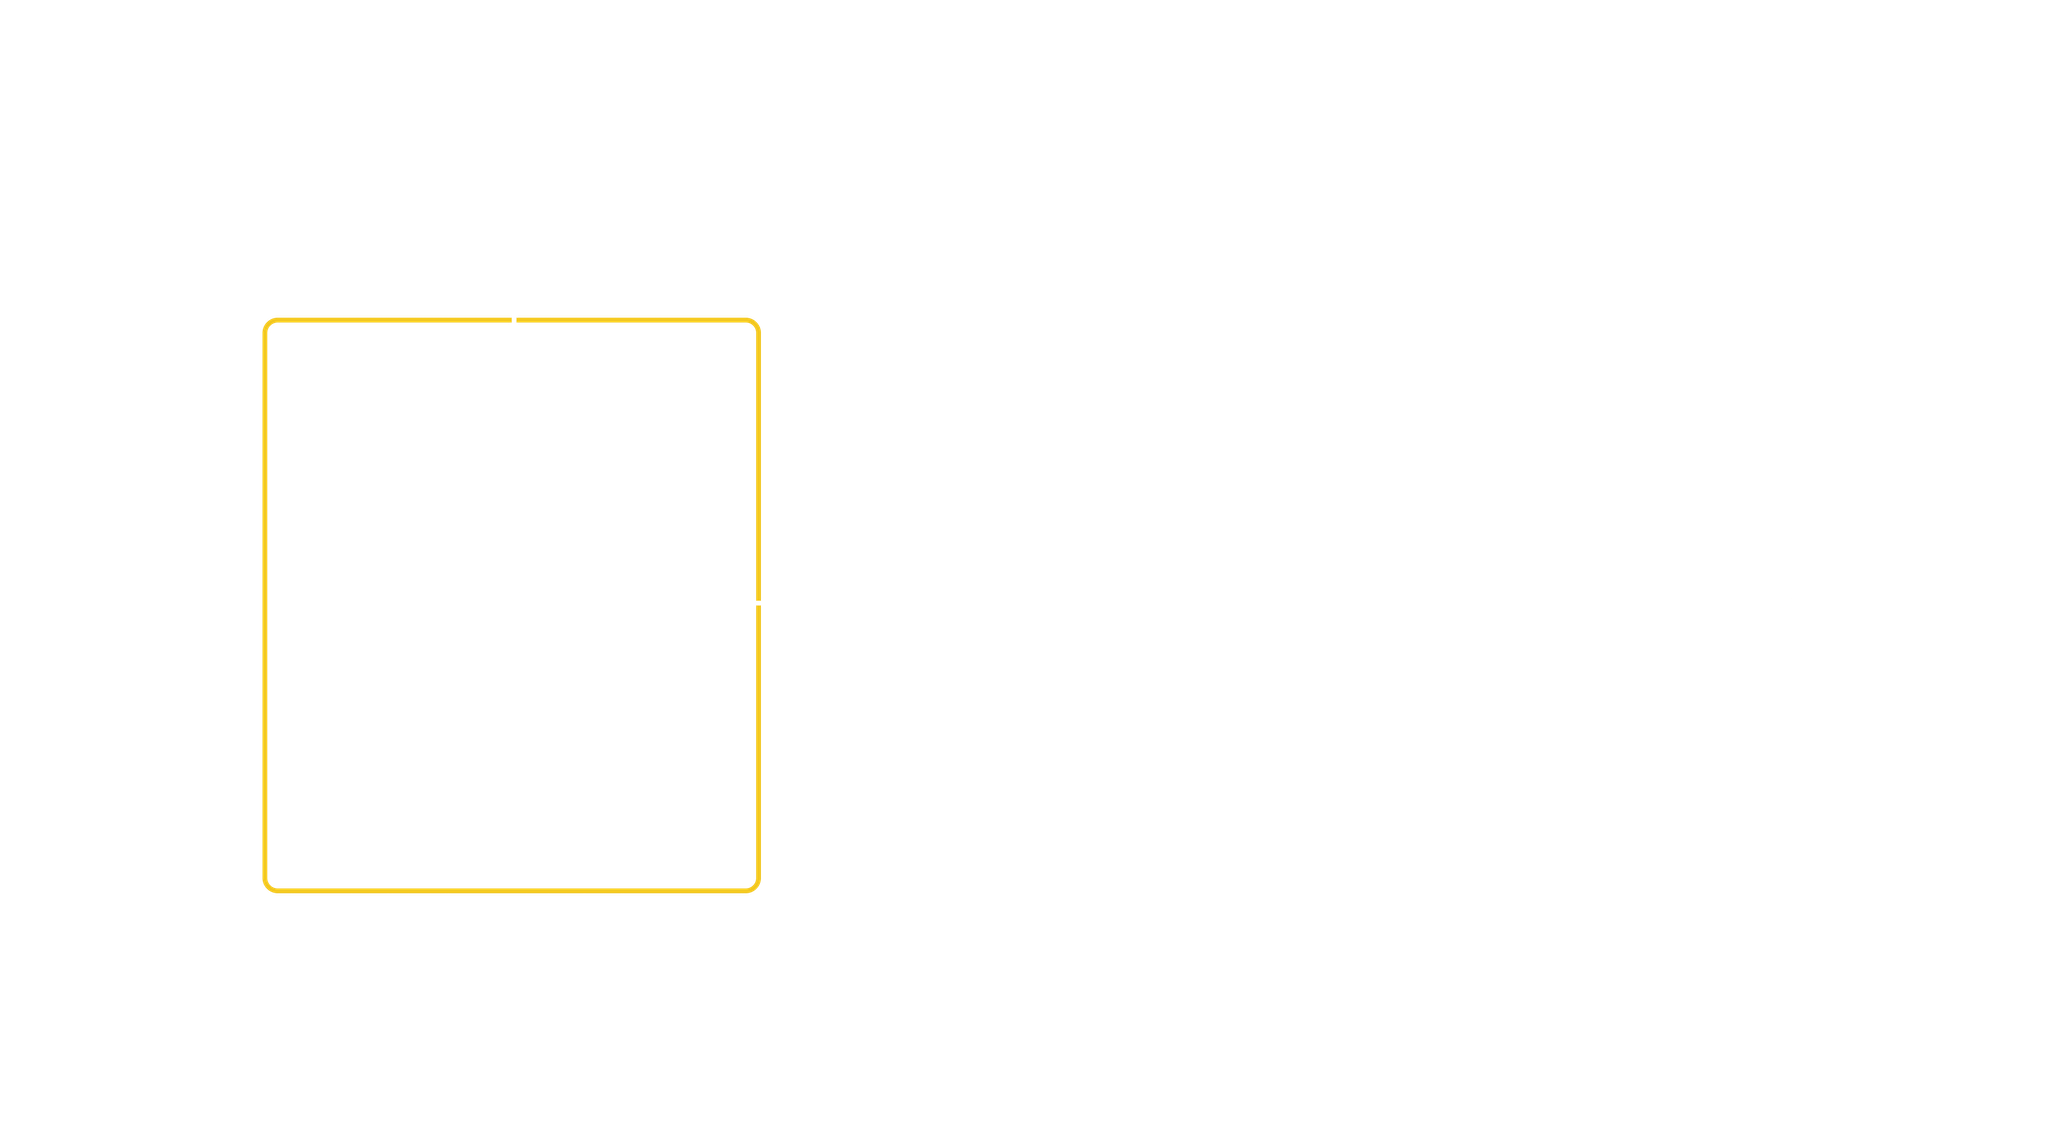 Two squares intersect